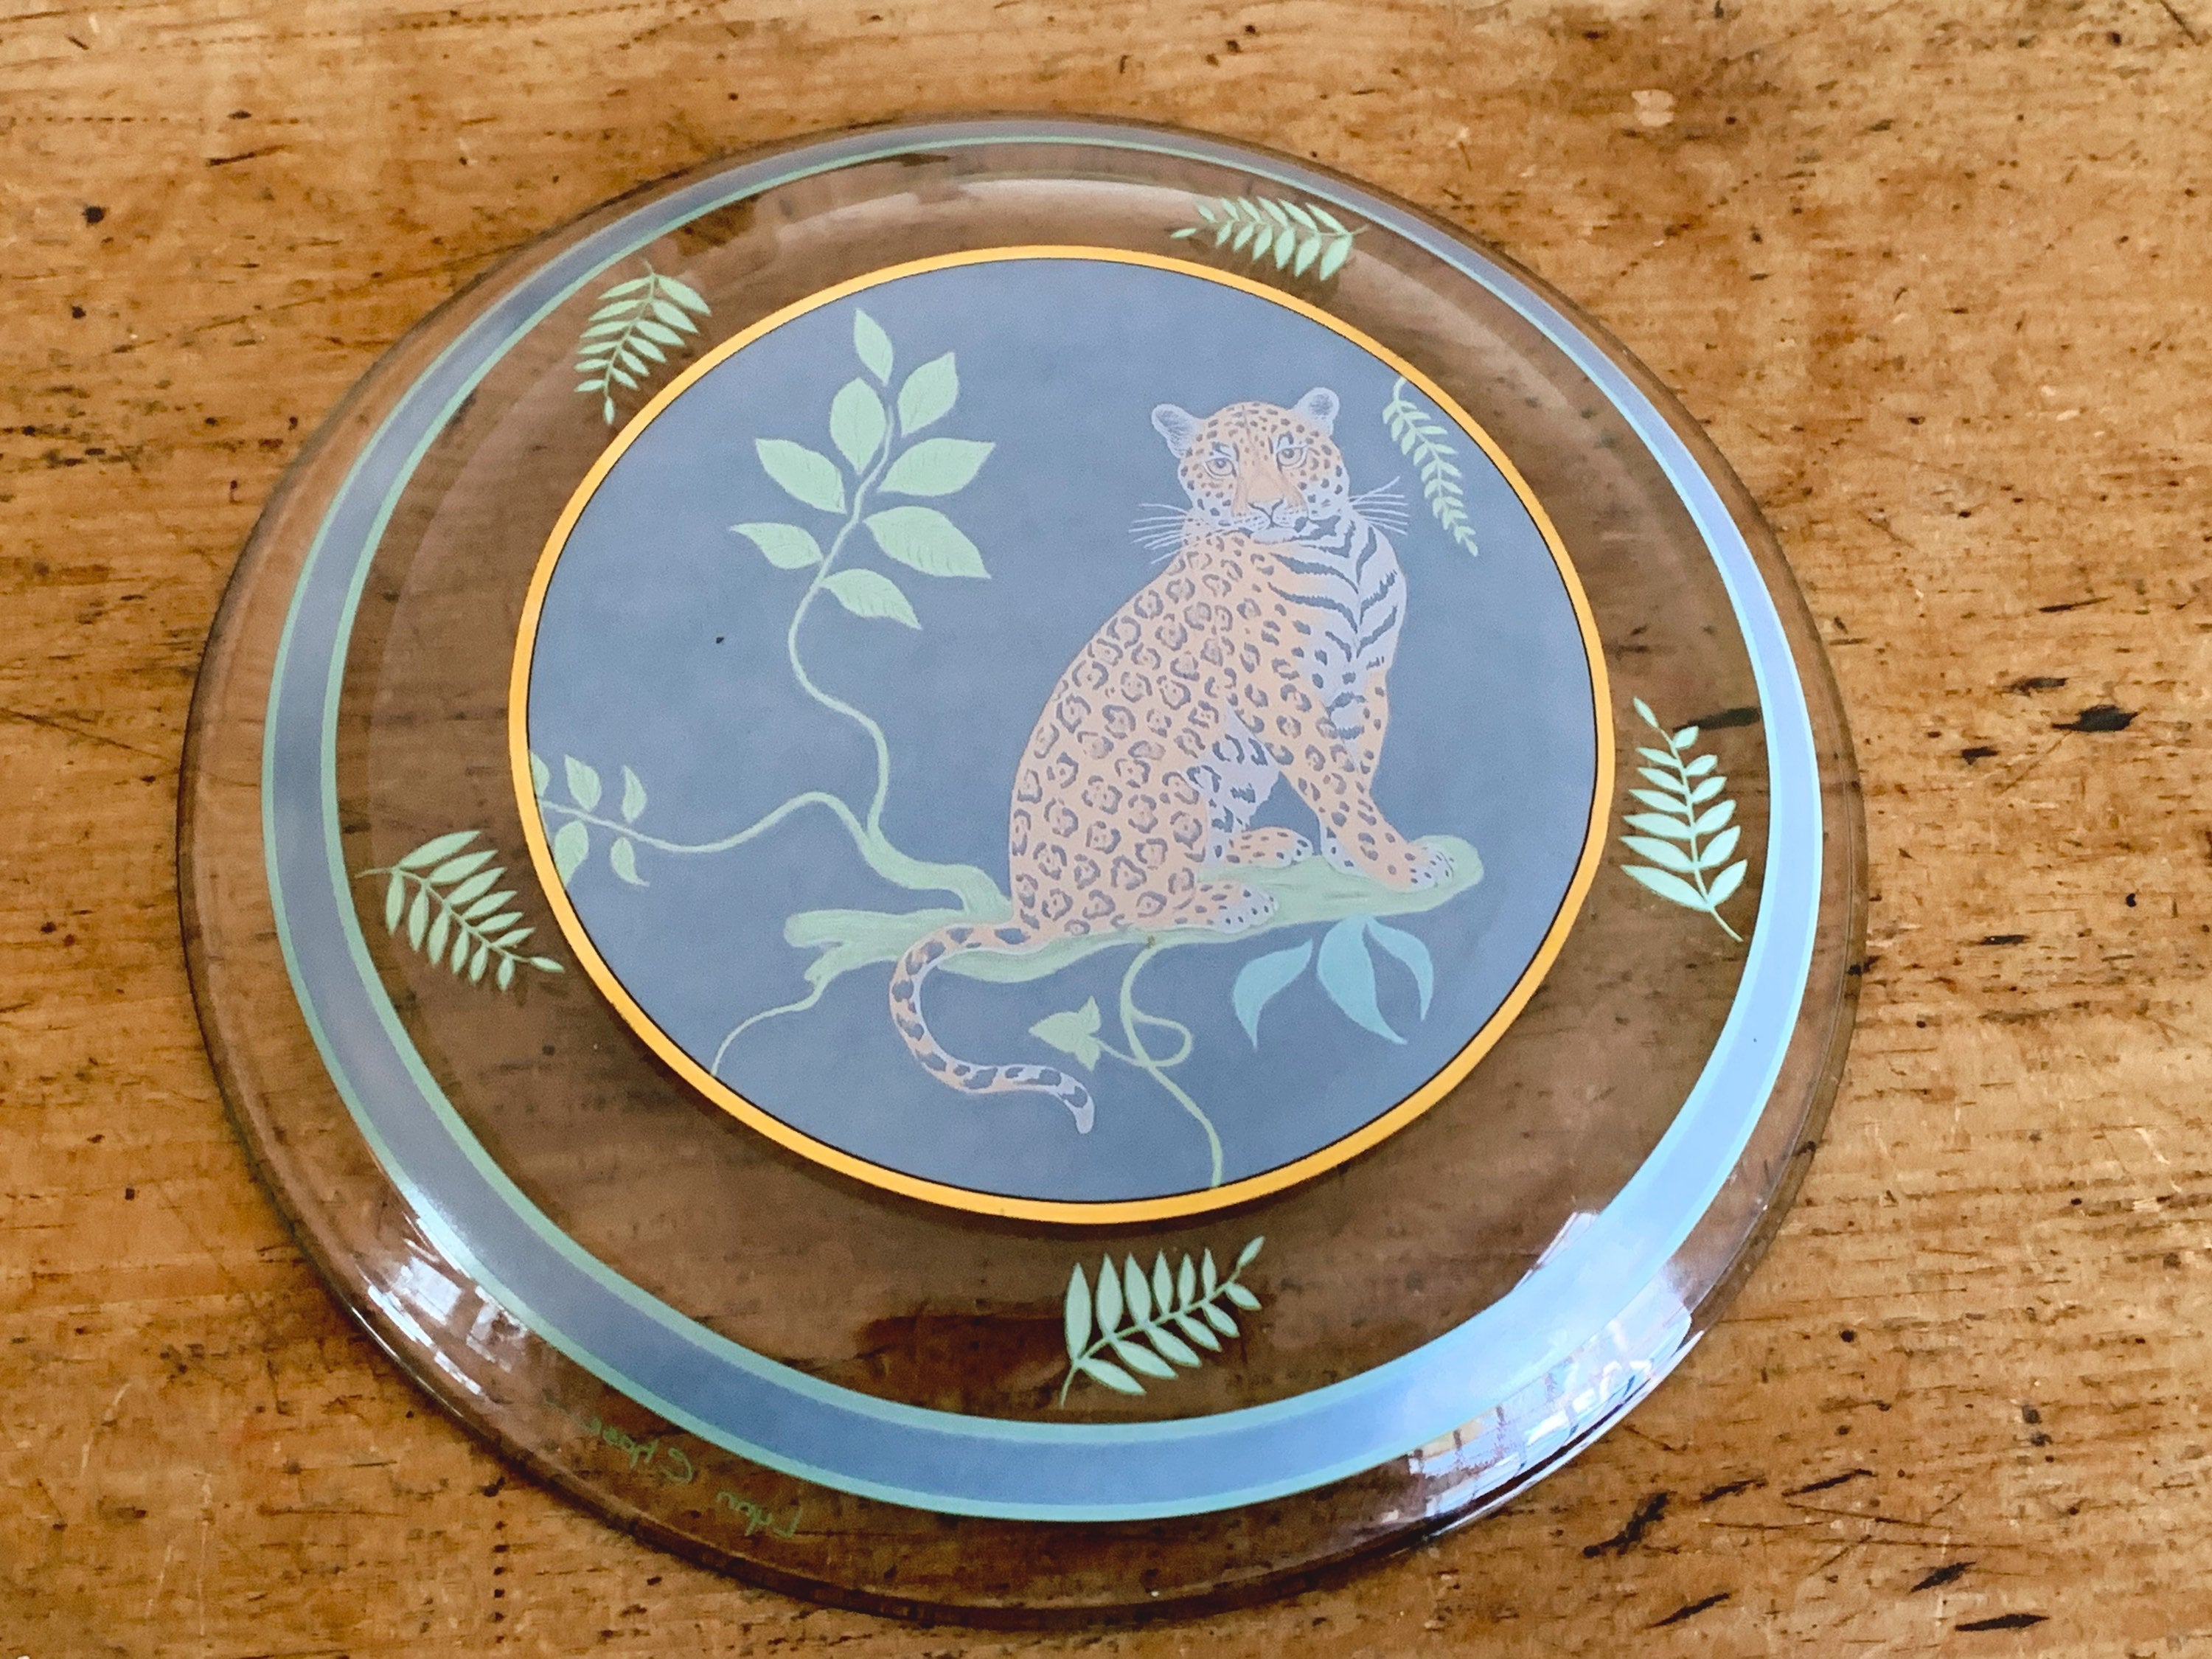 "Lynn Chase 'Jaguar Jungle' 8.25"" Glass Salad, Dessert, Lunch Plate 